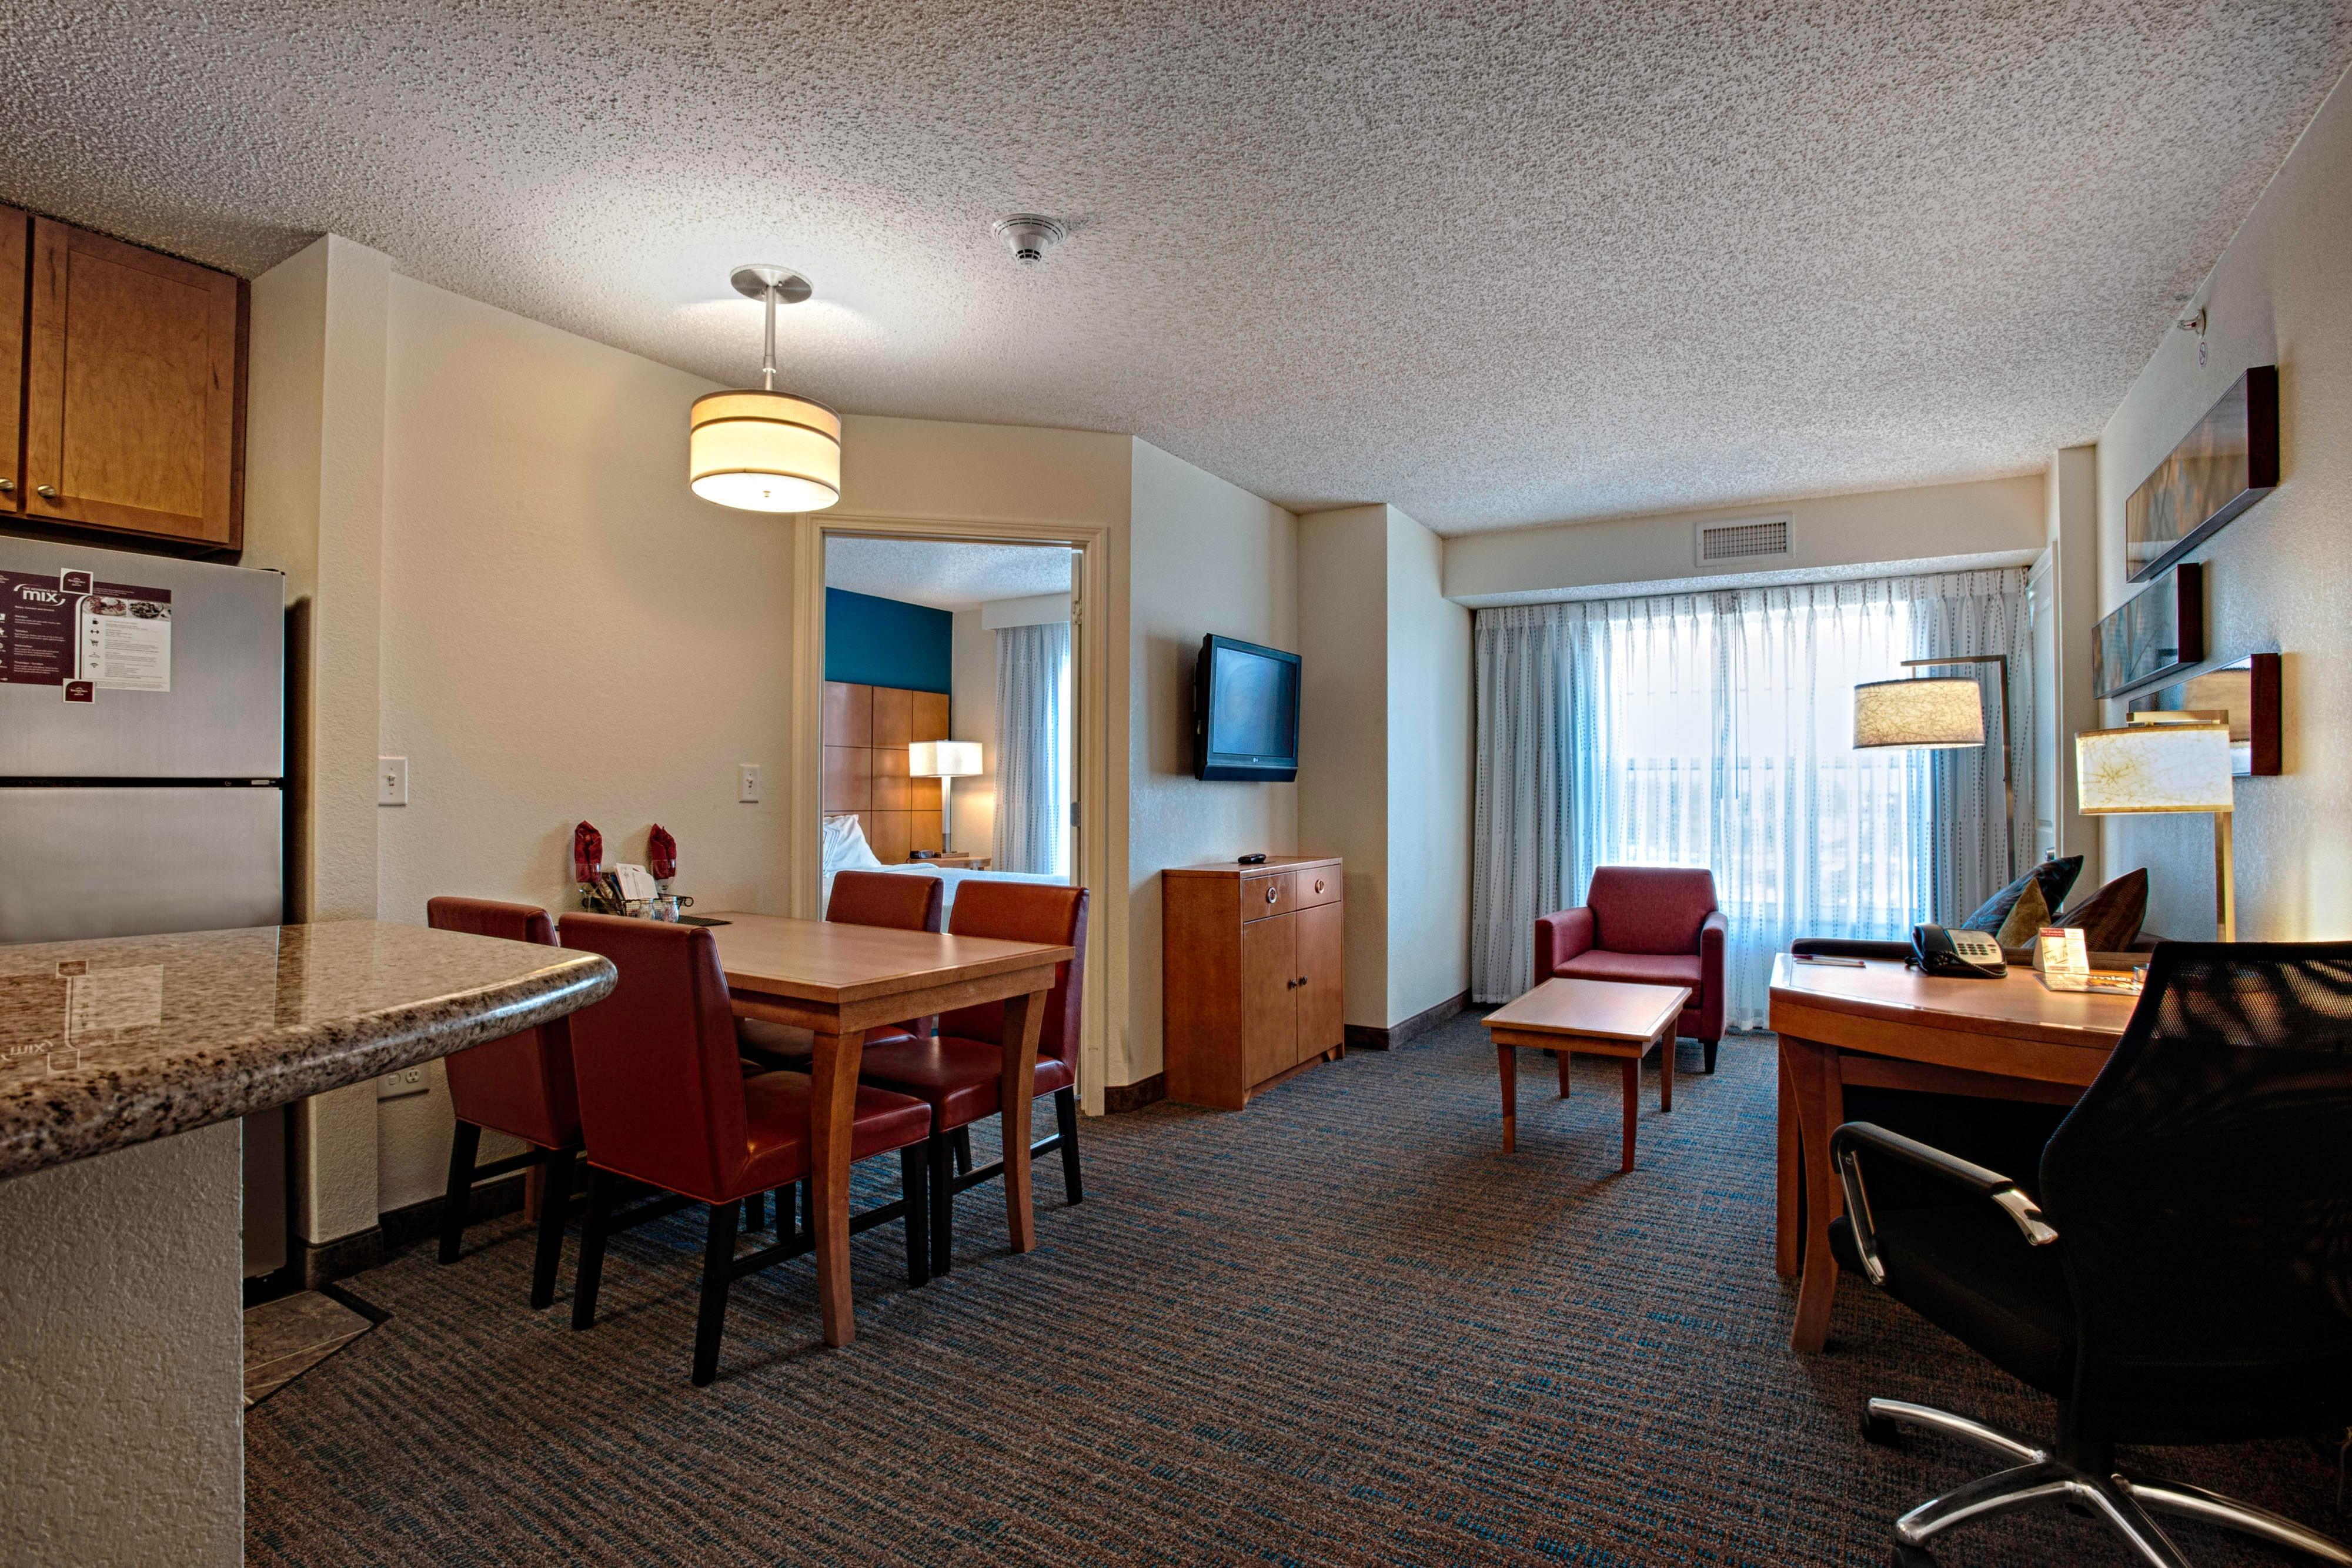 an msyew hotels queen orleans inn new is in all elmwood bedroom west suite hotel rooms hor suites clsc residence